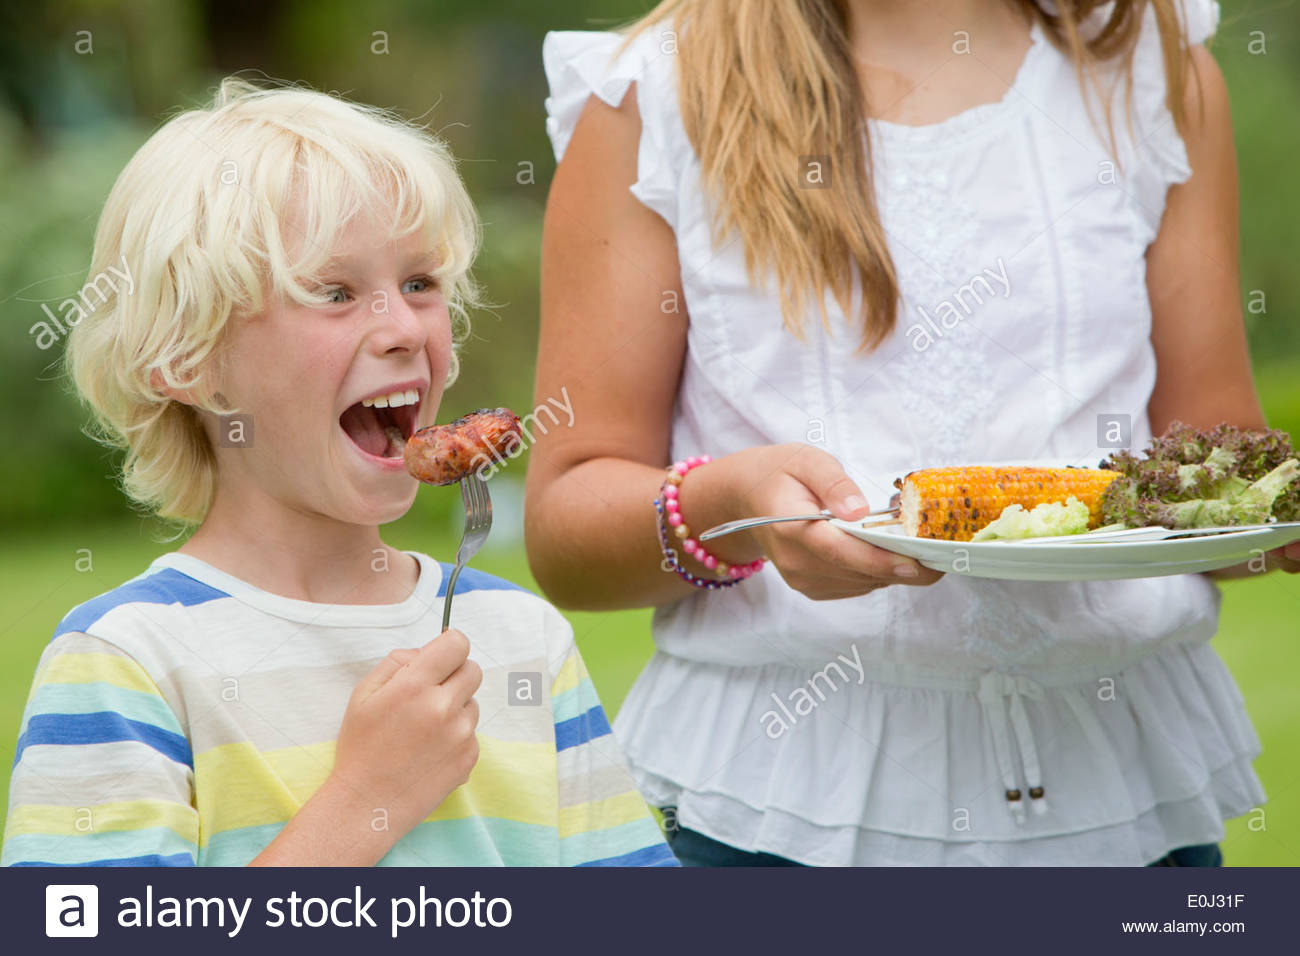 Close up of enthusiastic boy taking a bite of barbecued sausage - Stock Image